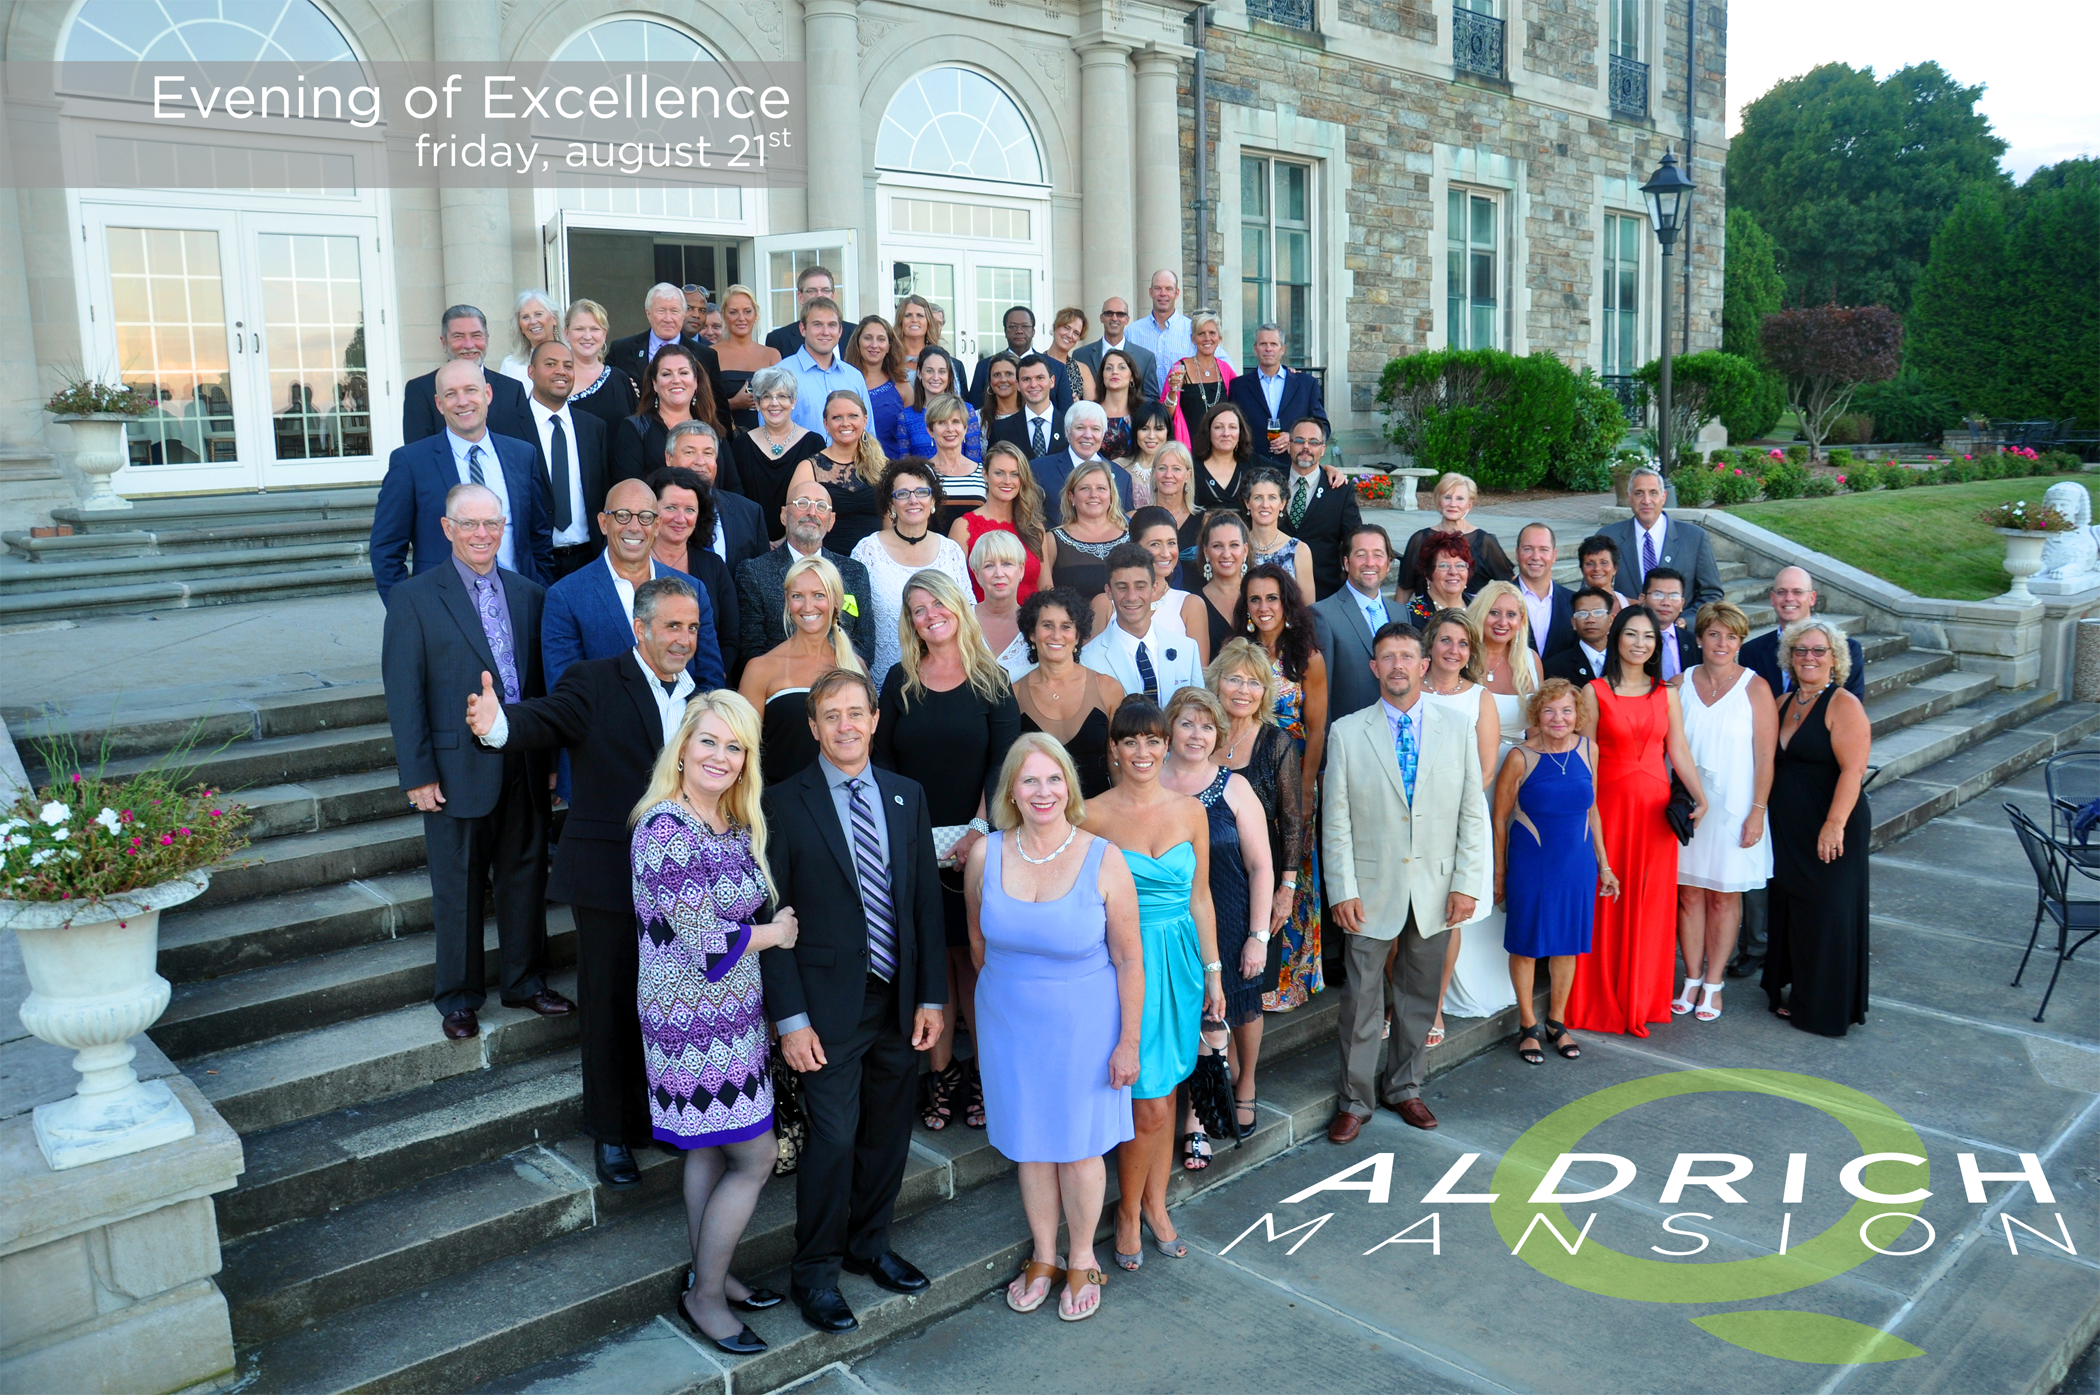 We Had An Incredible Night At The Warwick Ri Evening Of Excellence Congratulations To All Who Attended Let Us Know Below If You Plan To Qualify To Attend